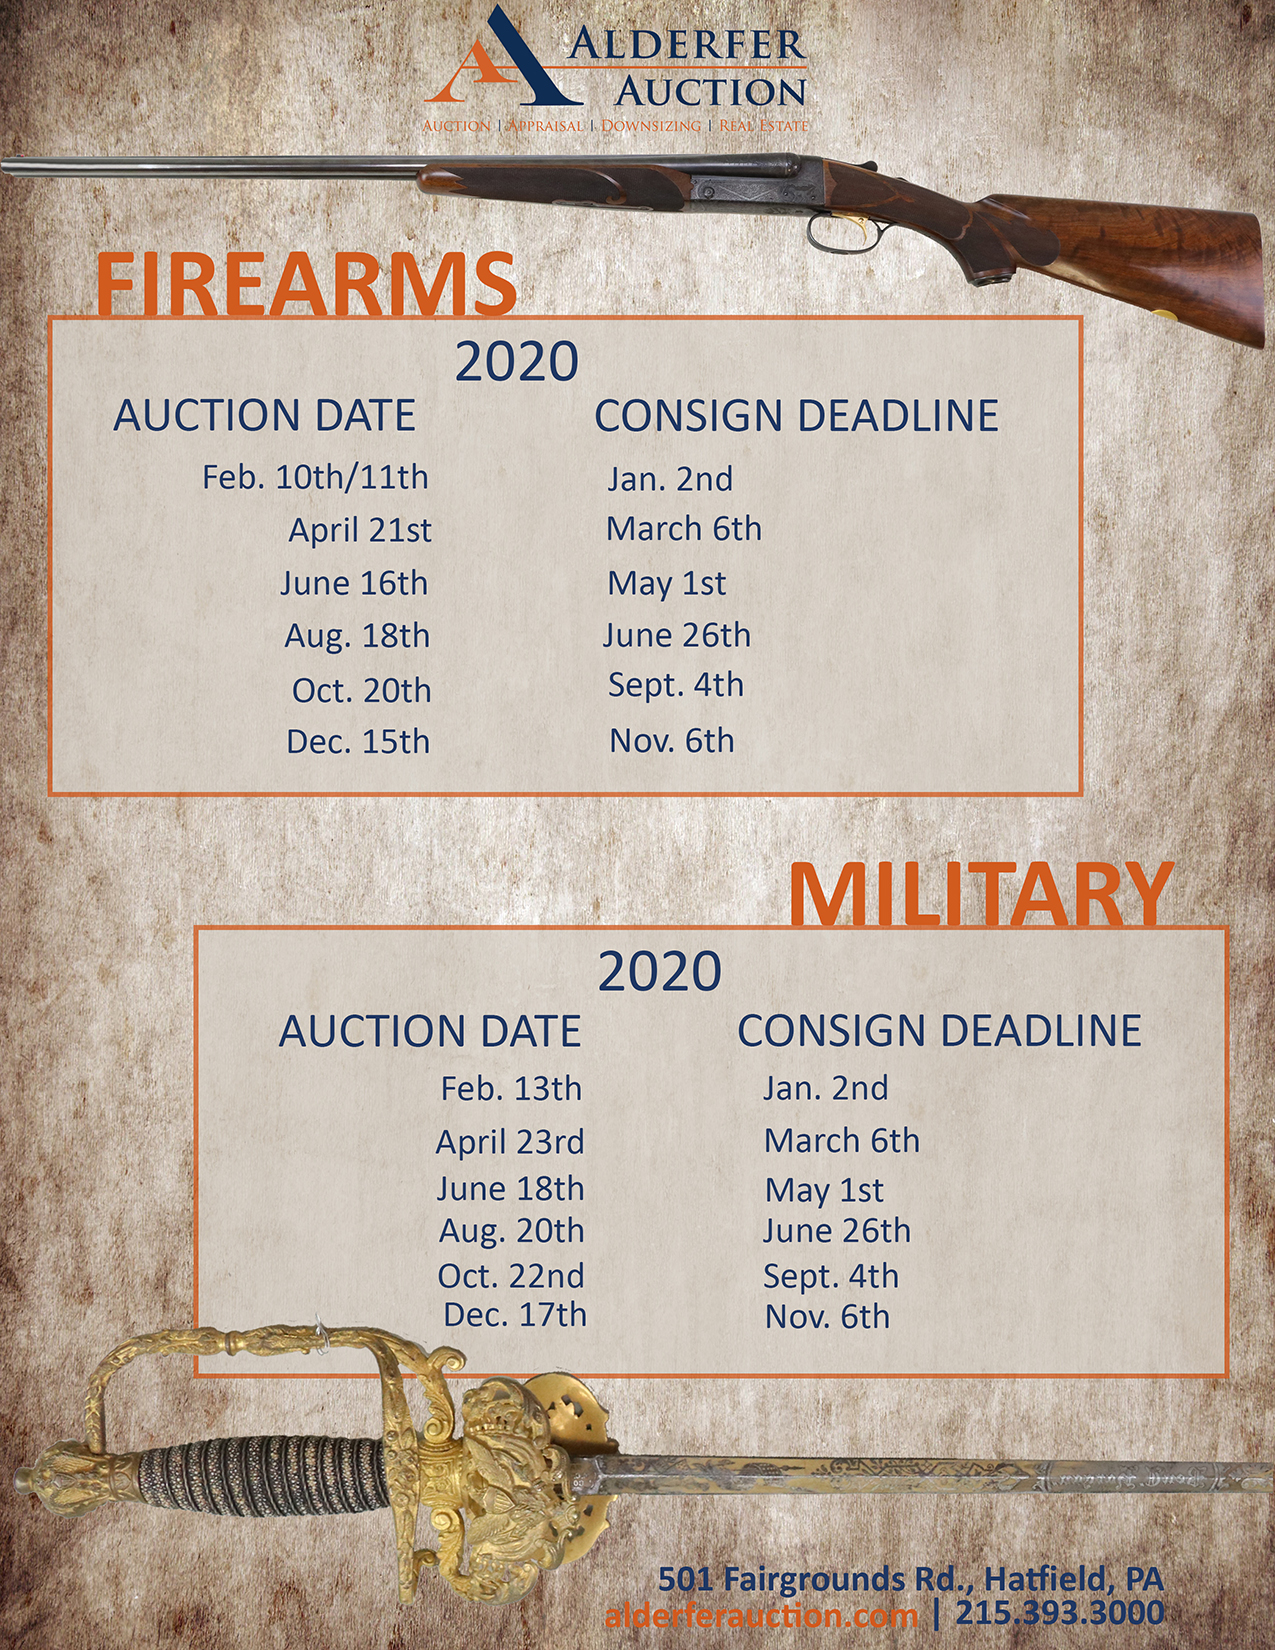 Alderfer Auction firearms and military deadlines schedule